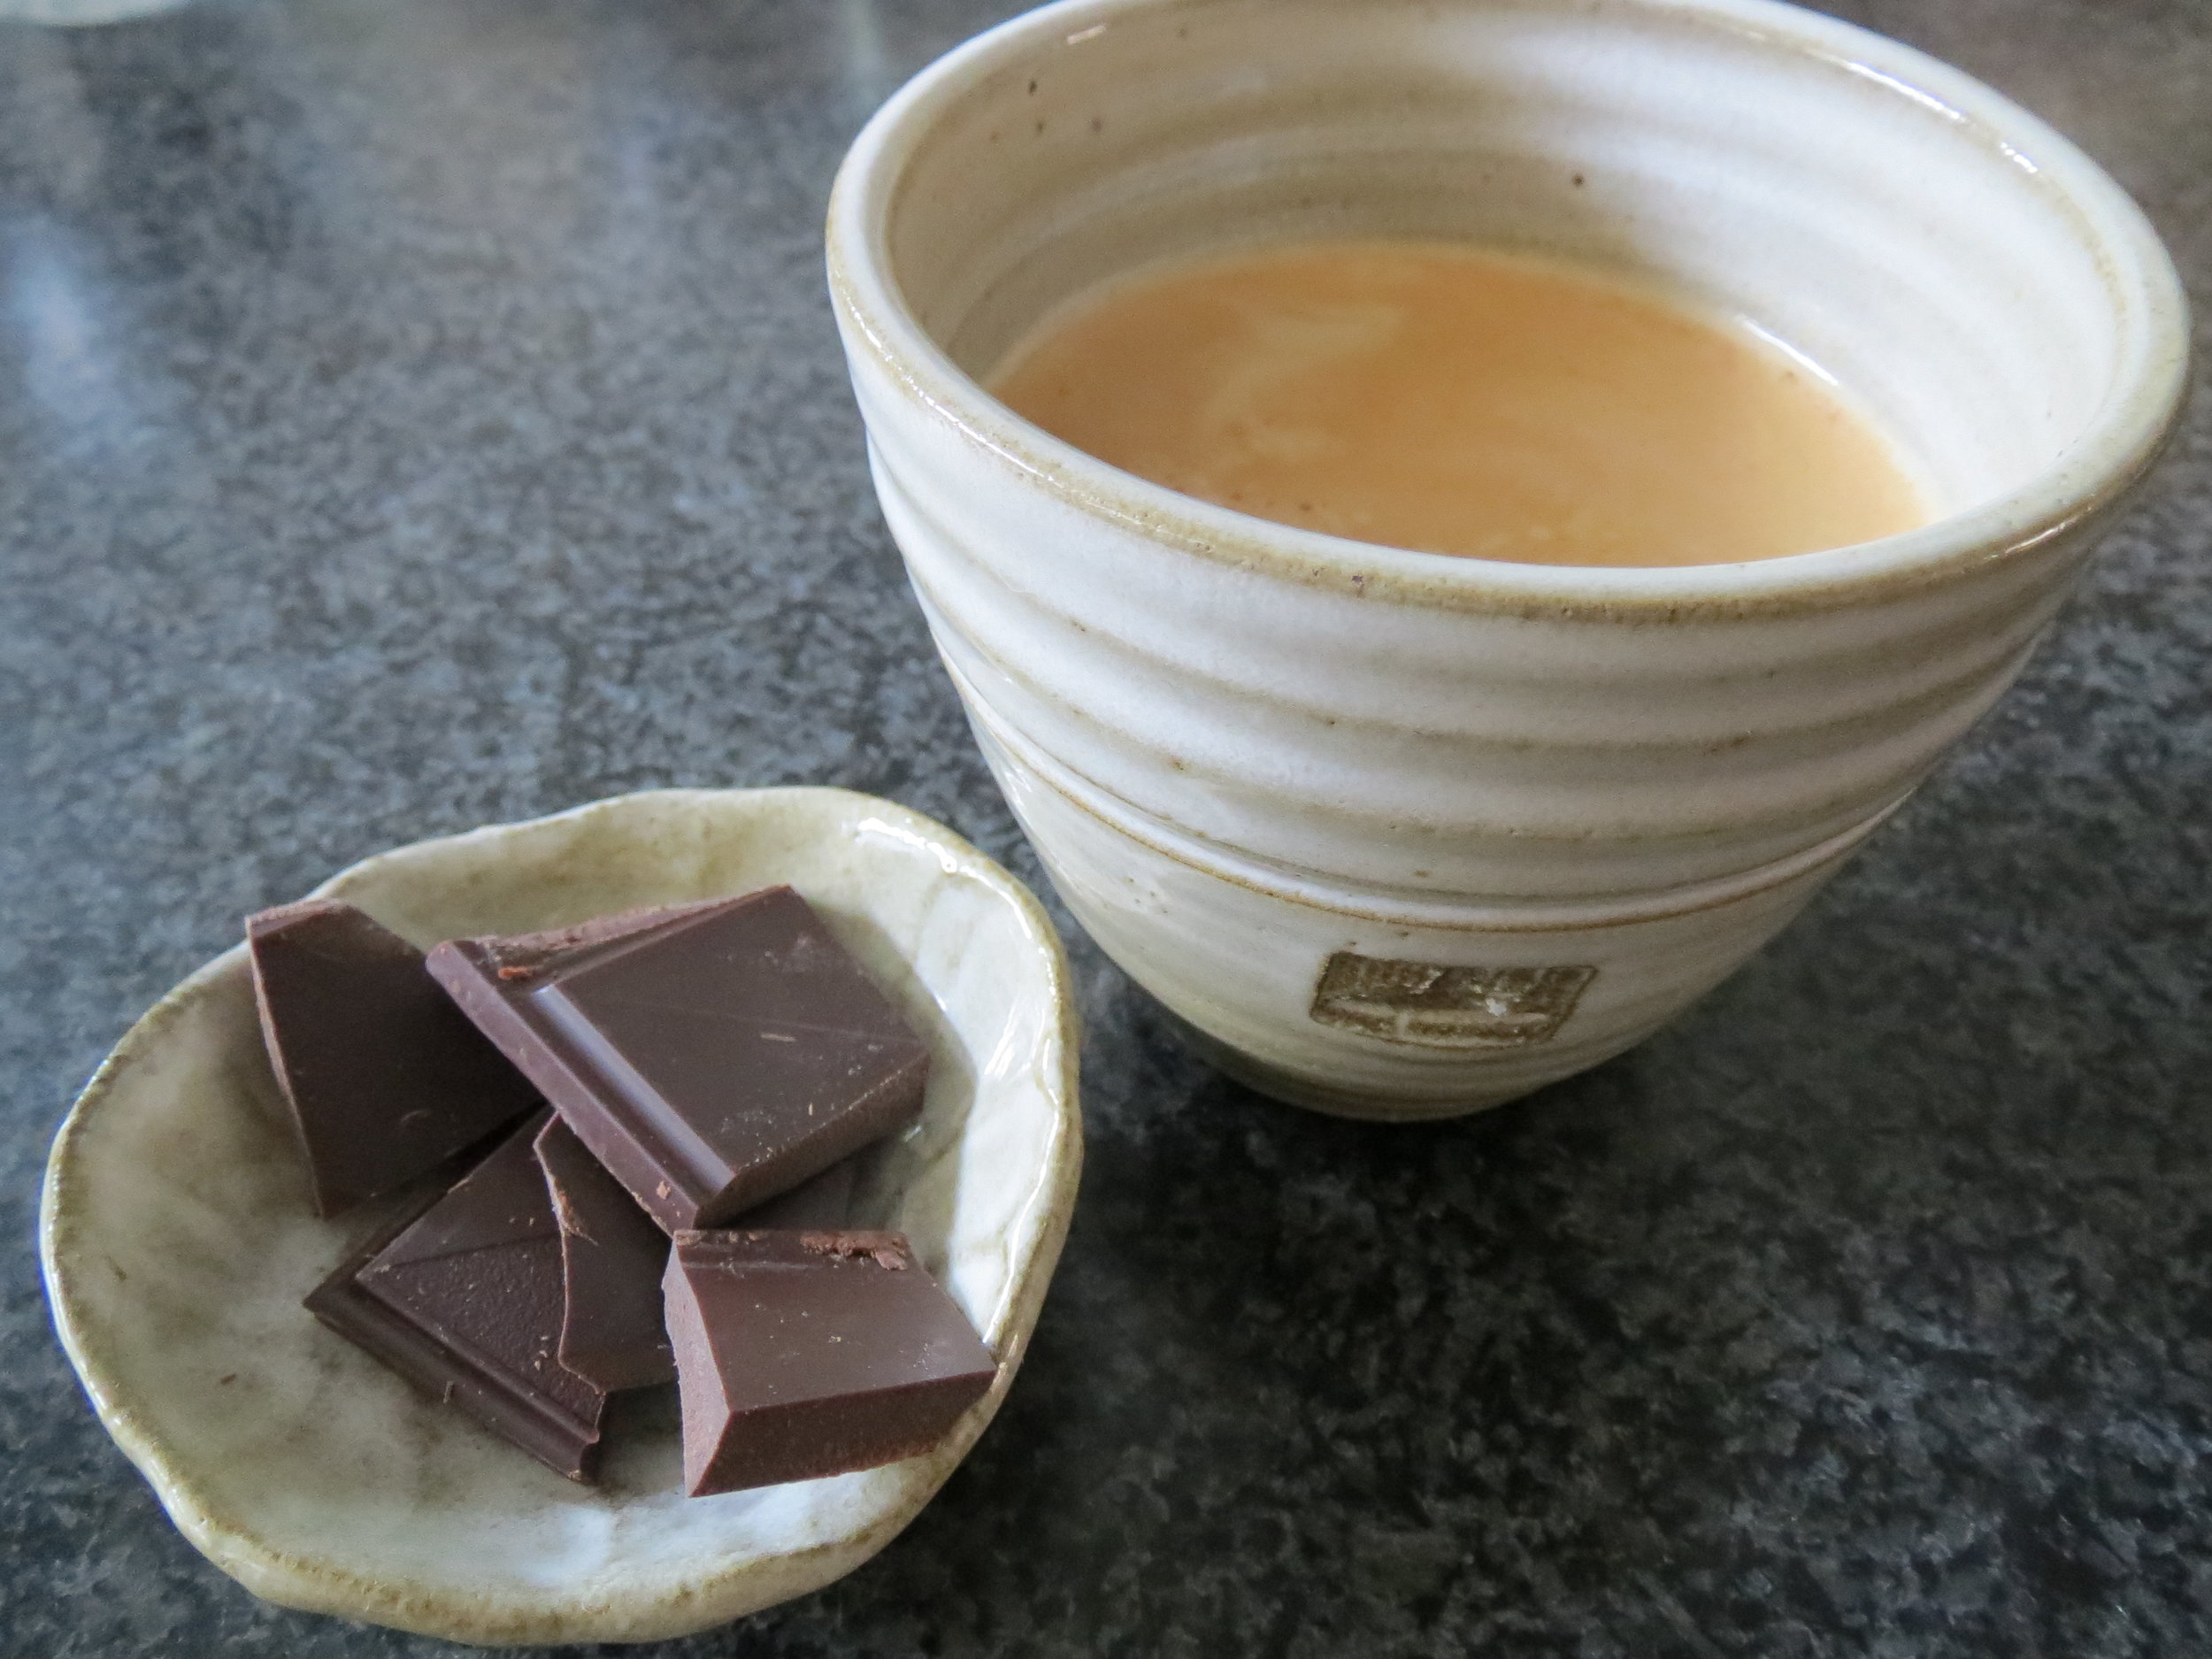 The beautiful coffee and chocolate moment...